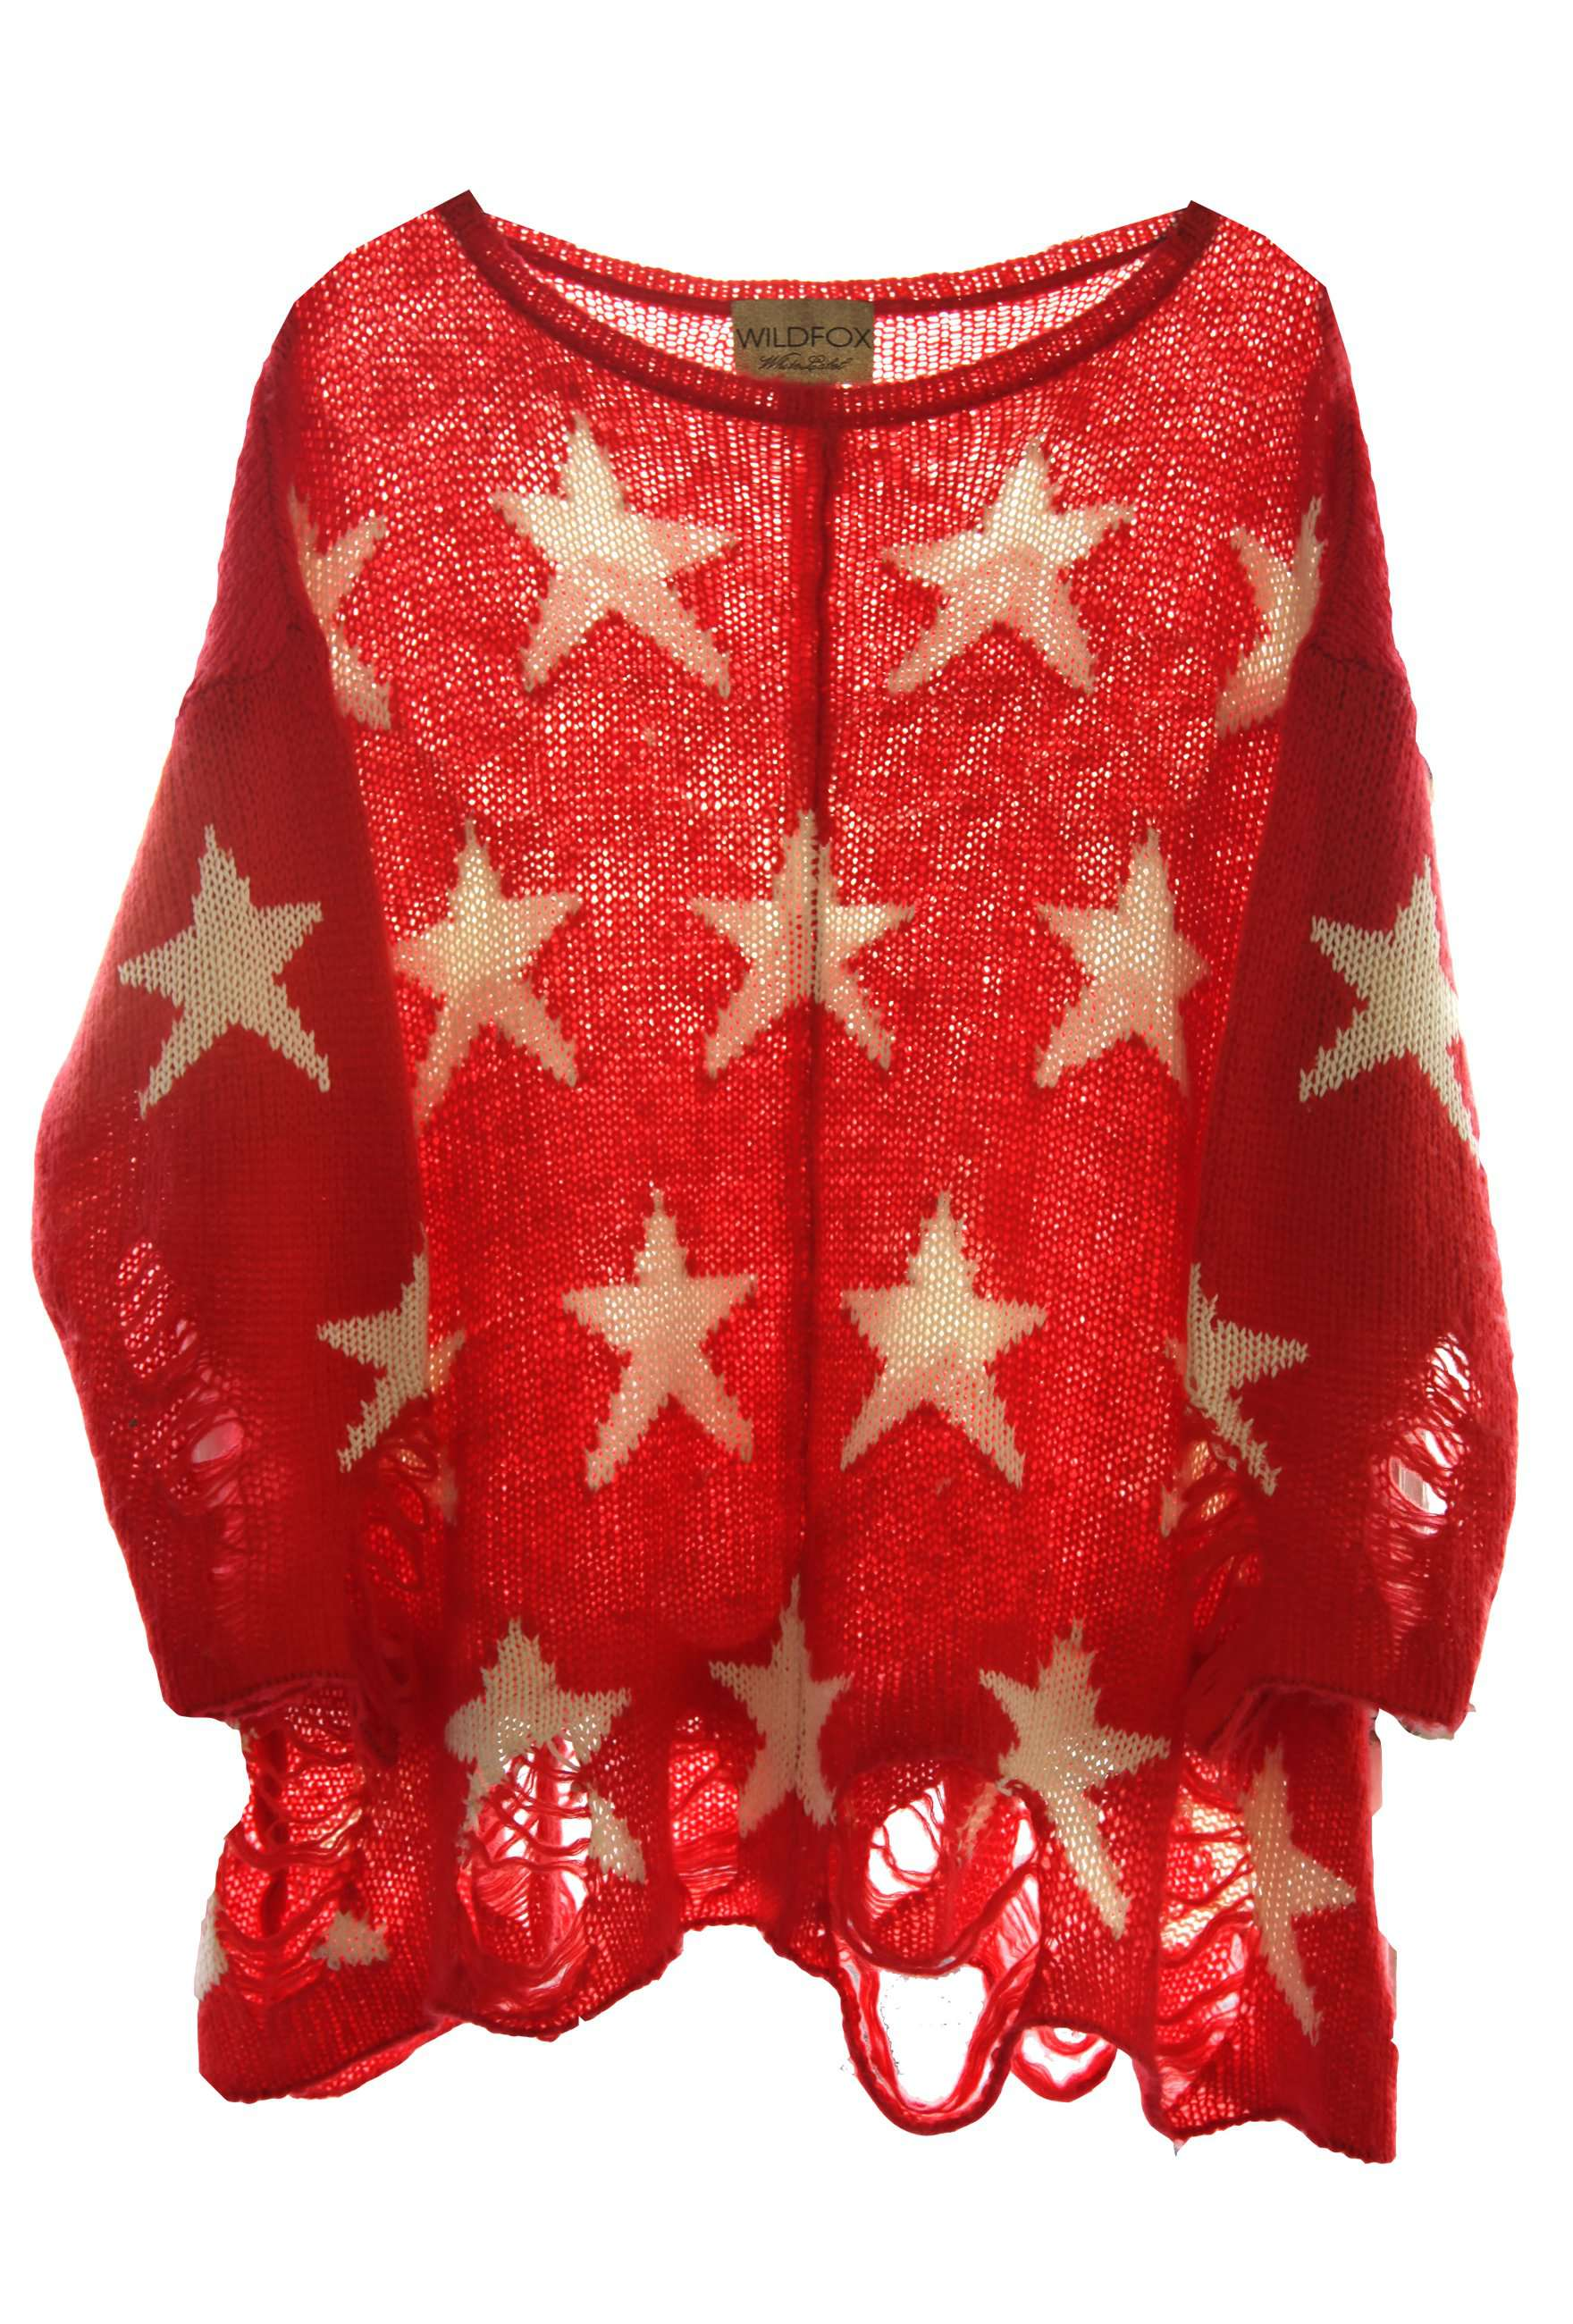 The Seeing Stars Lennon Sweater in Red